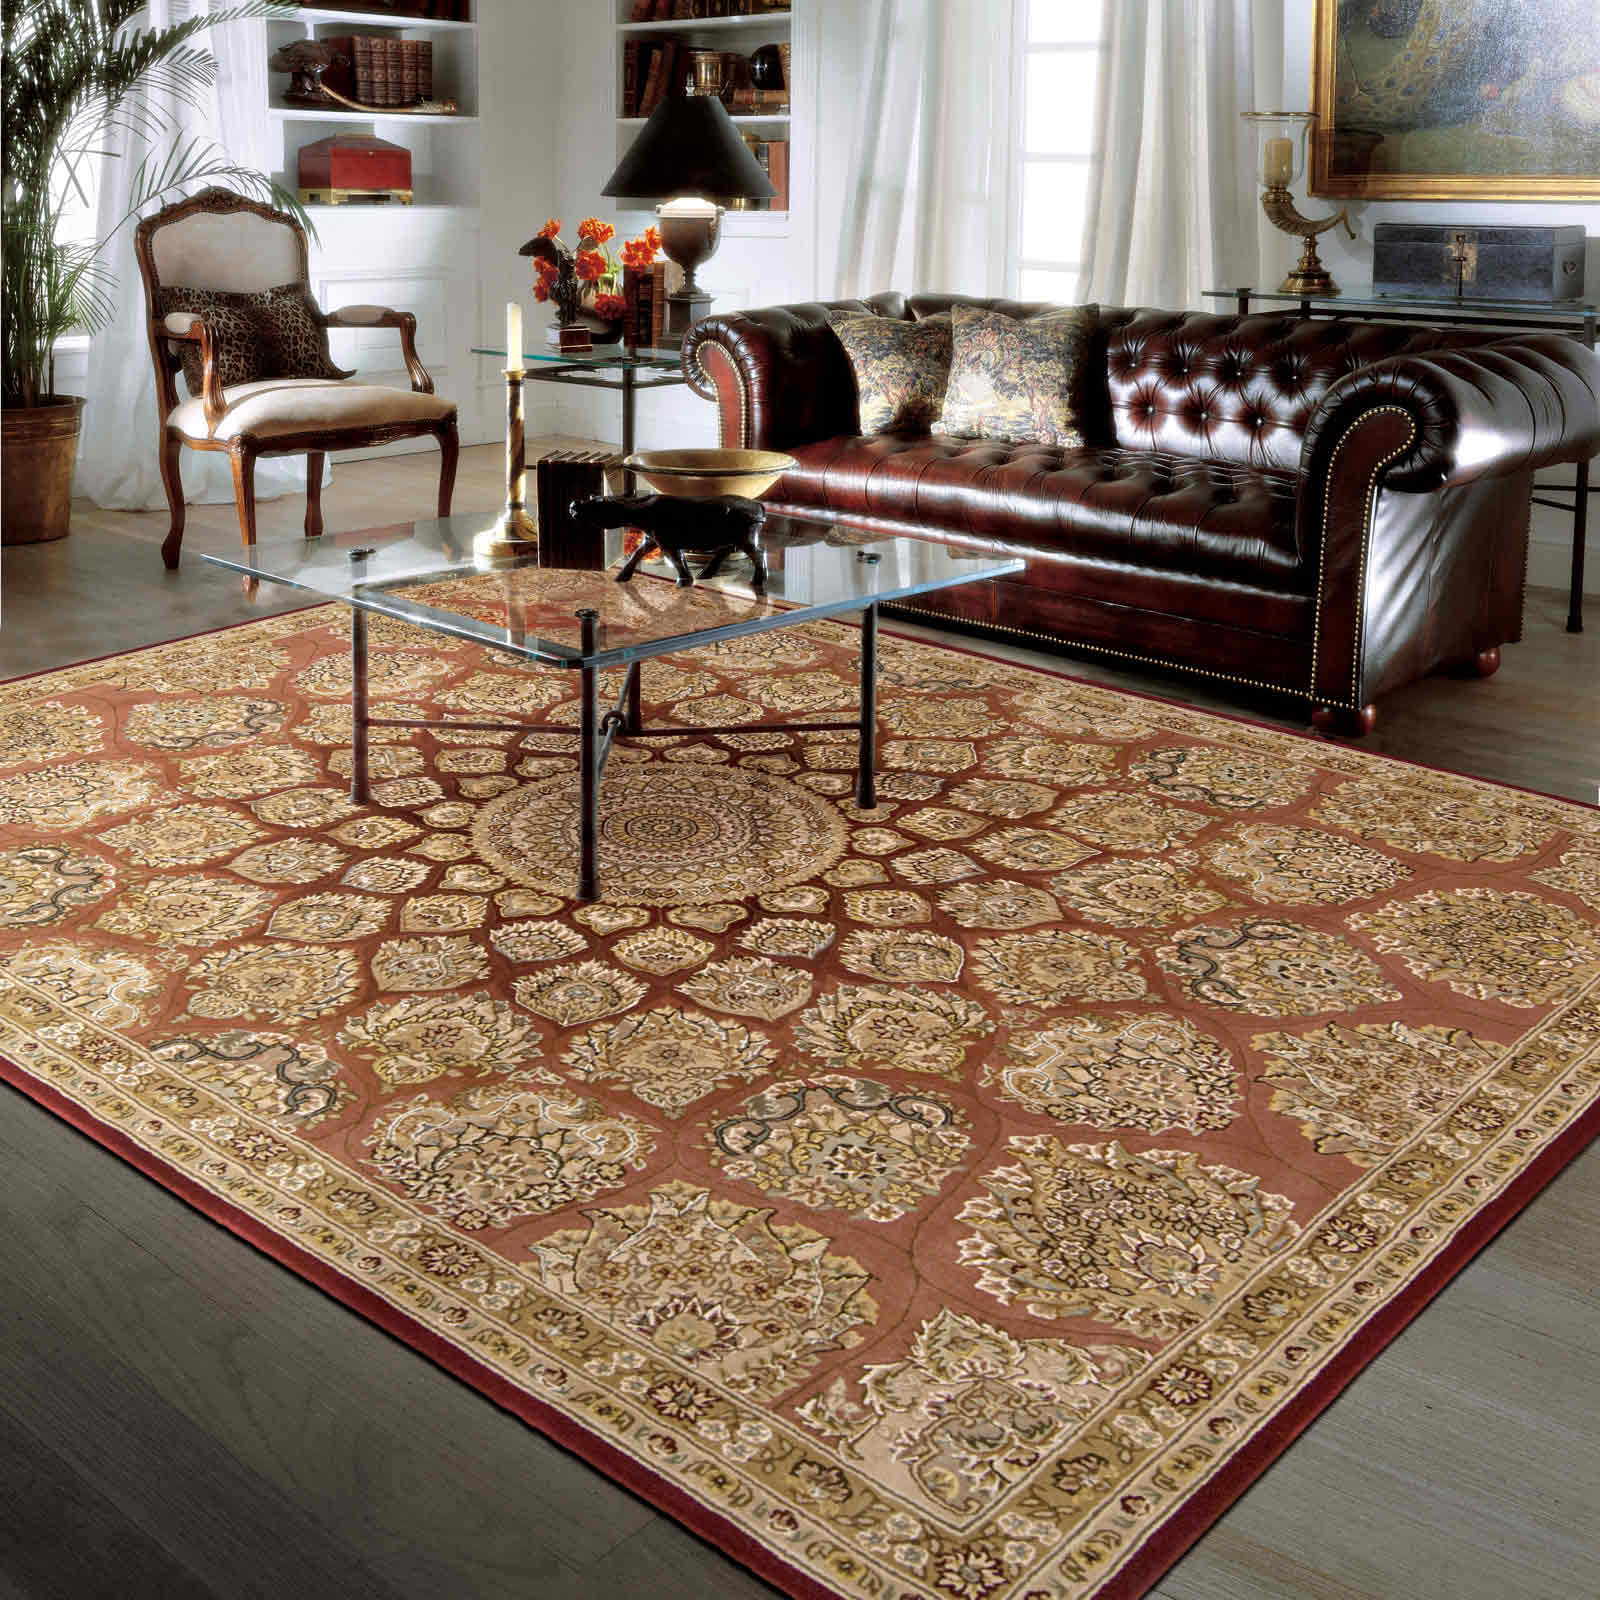 Nourison 2000 Rugs 2318 ROS in Rose